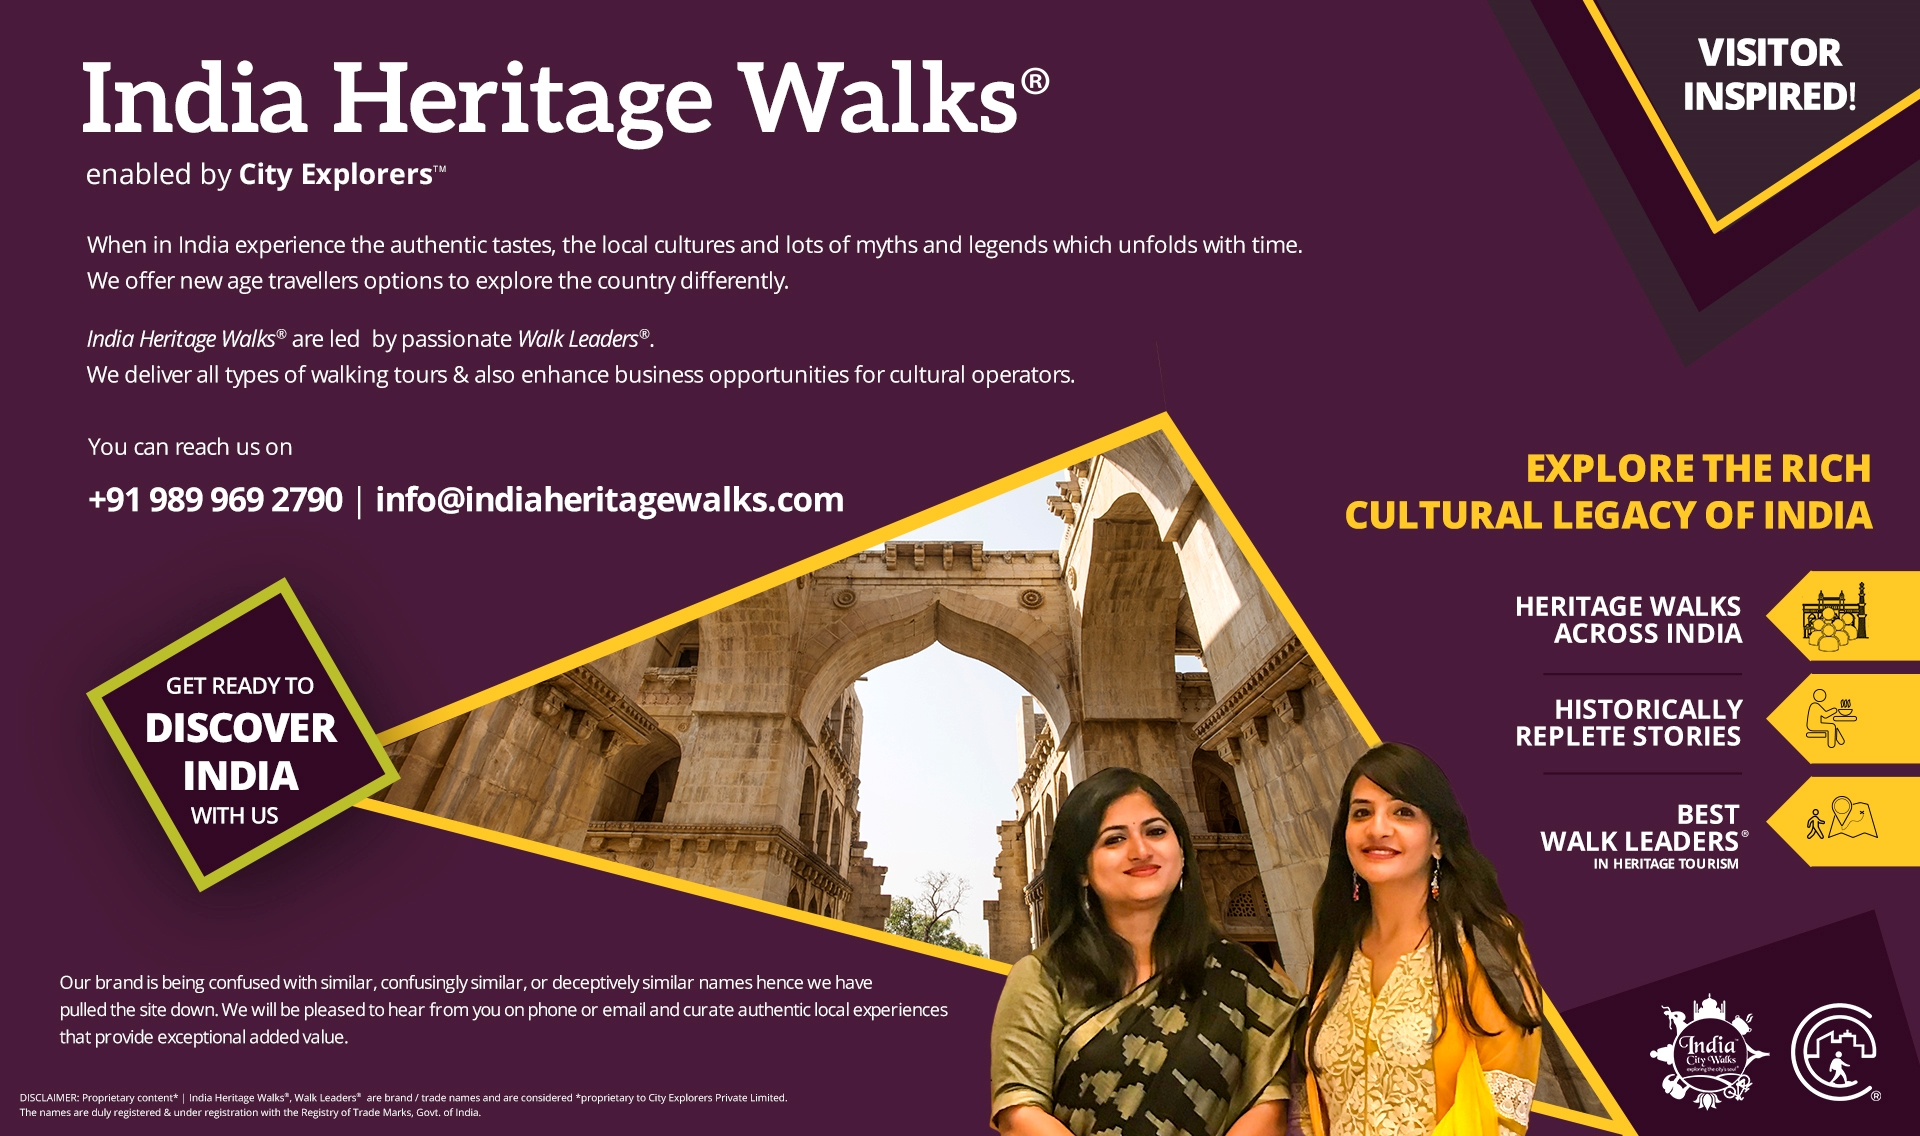 India Heritage Walks®️ (IHW)is a flagship of 'City Explorers®️' facilitated by 'India City Walks', celebrating heritage, culture & history, engaging local population in tourism across India.